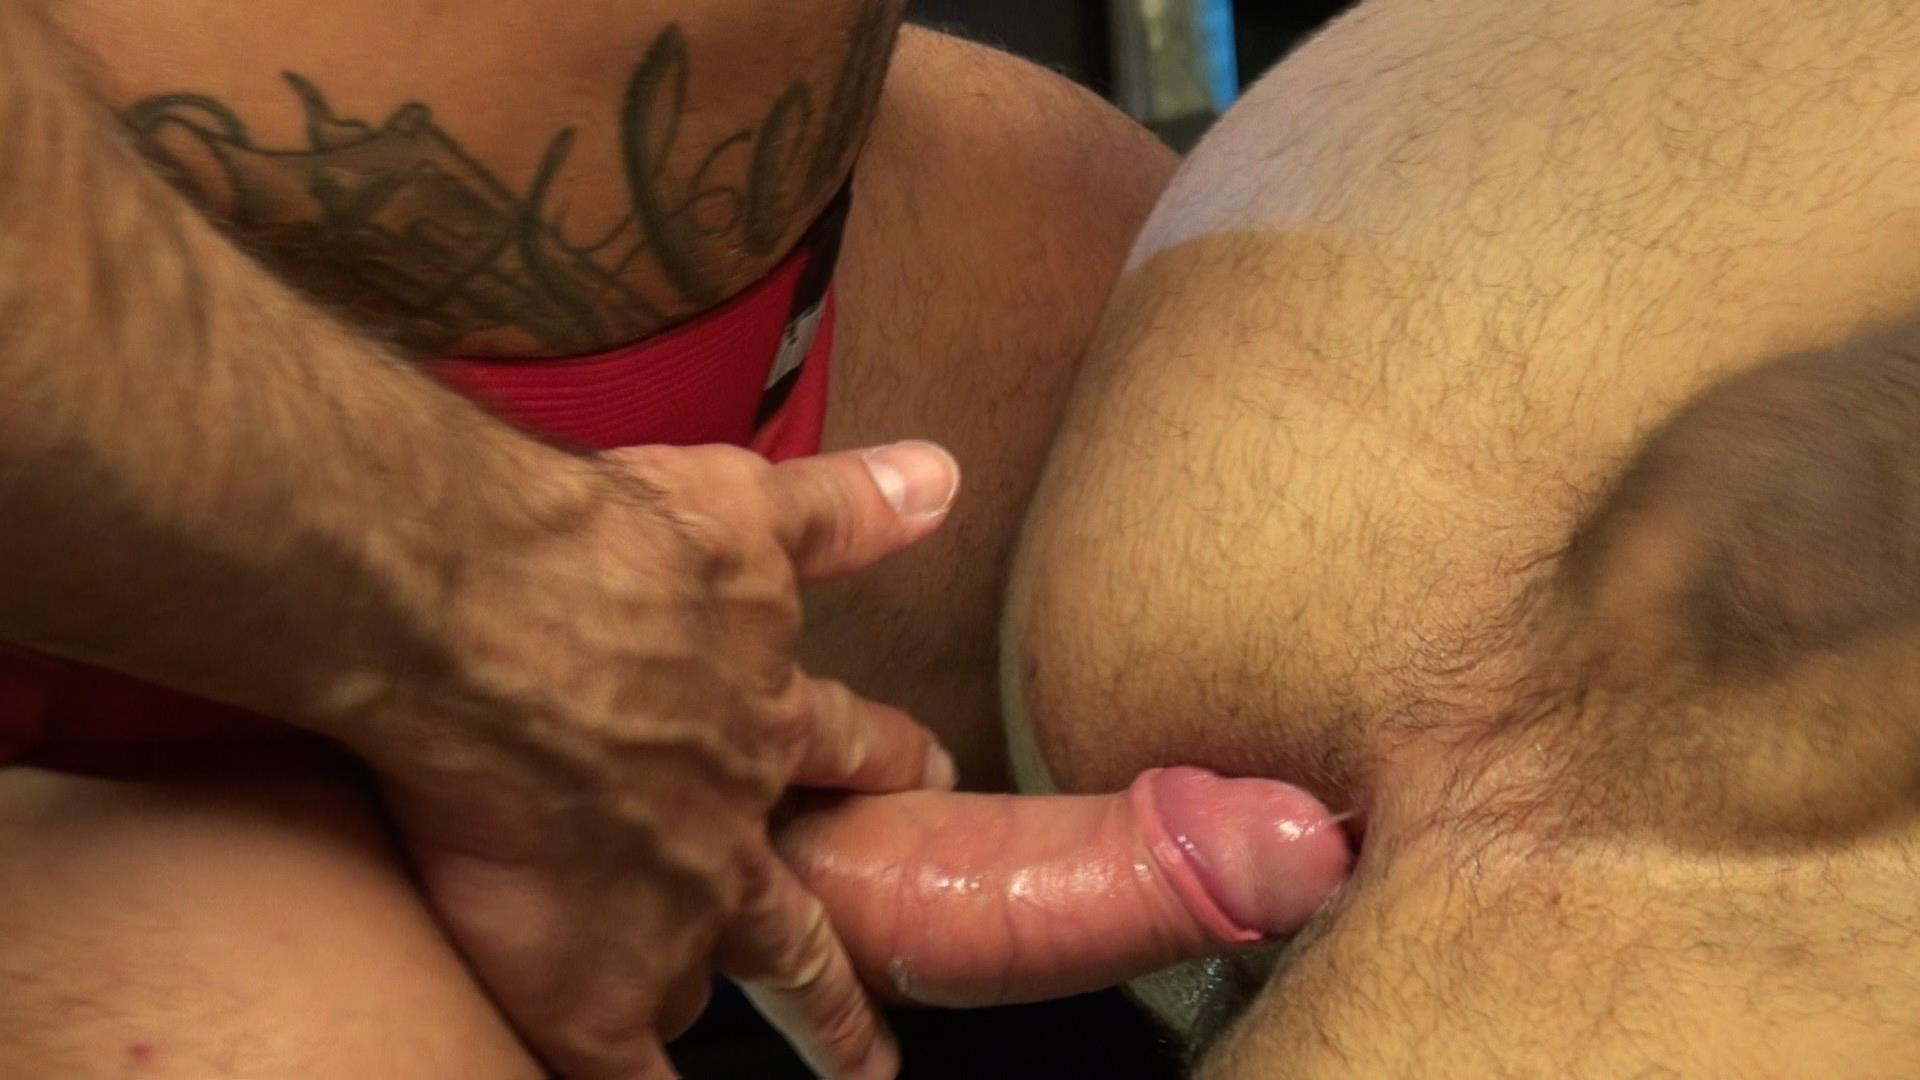 Dark-Alley-XT-Mario-Domenech-and-Antonio-Miracle-Jocks-Bareback-Bathhouse-Sex-Amateur-Gay-Porn-05 Muscle Jocks Bareback Fucking At A Bathhouse With Their Big Uncut Cocks